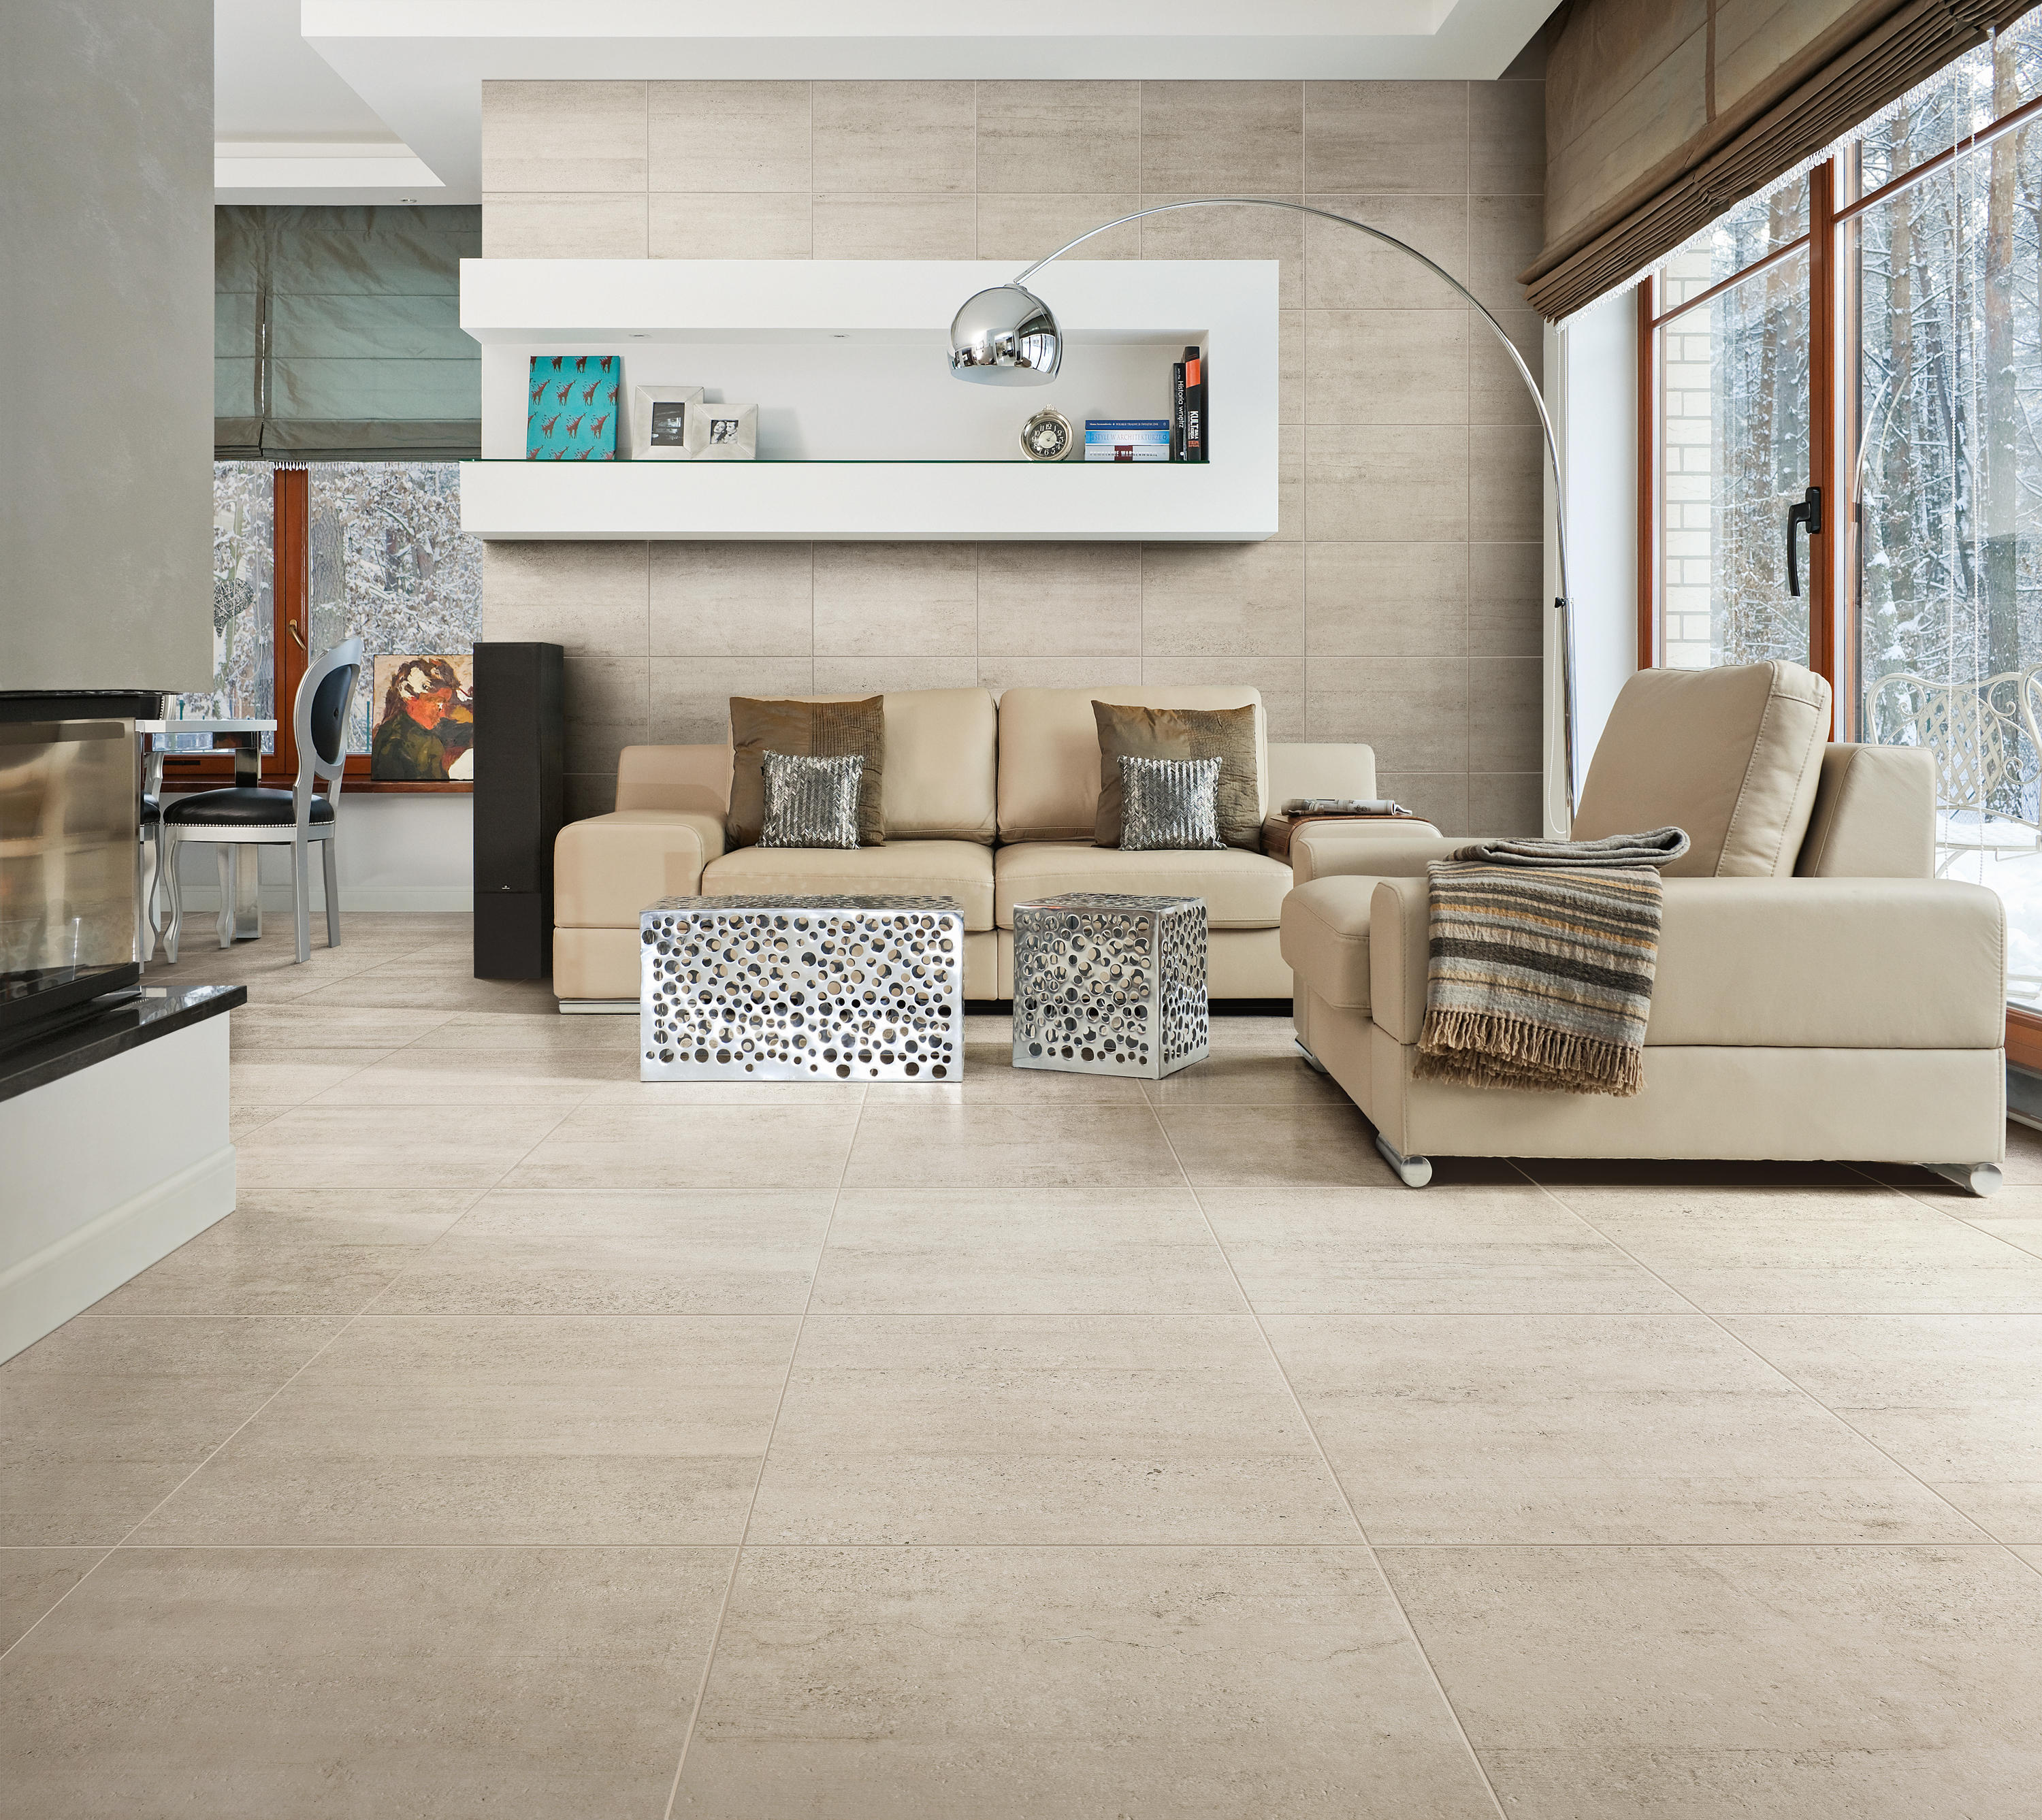 BUSKER BEIGE - Tiles from ASCOT CERAMICHE  Architonic